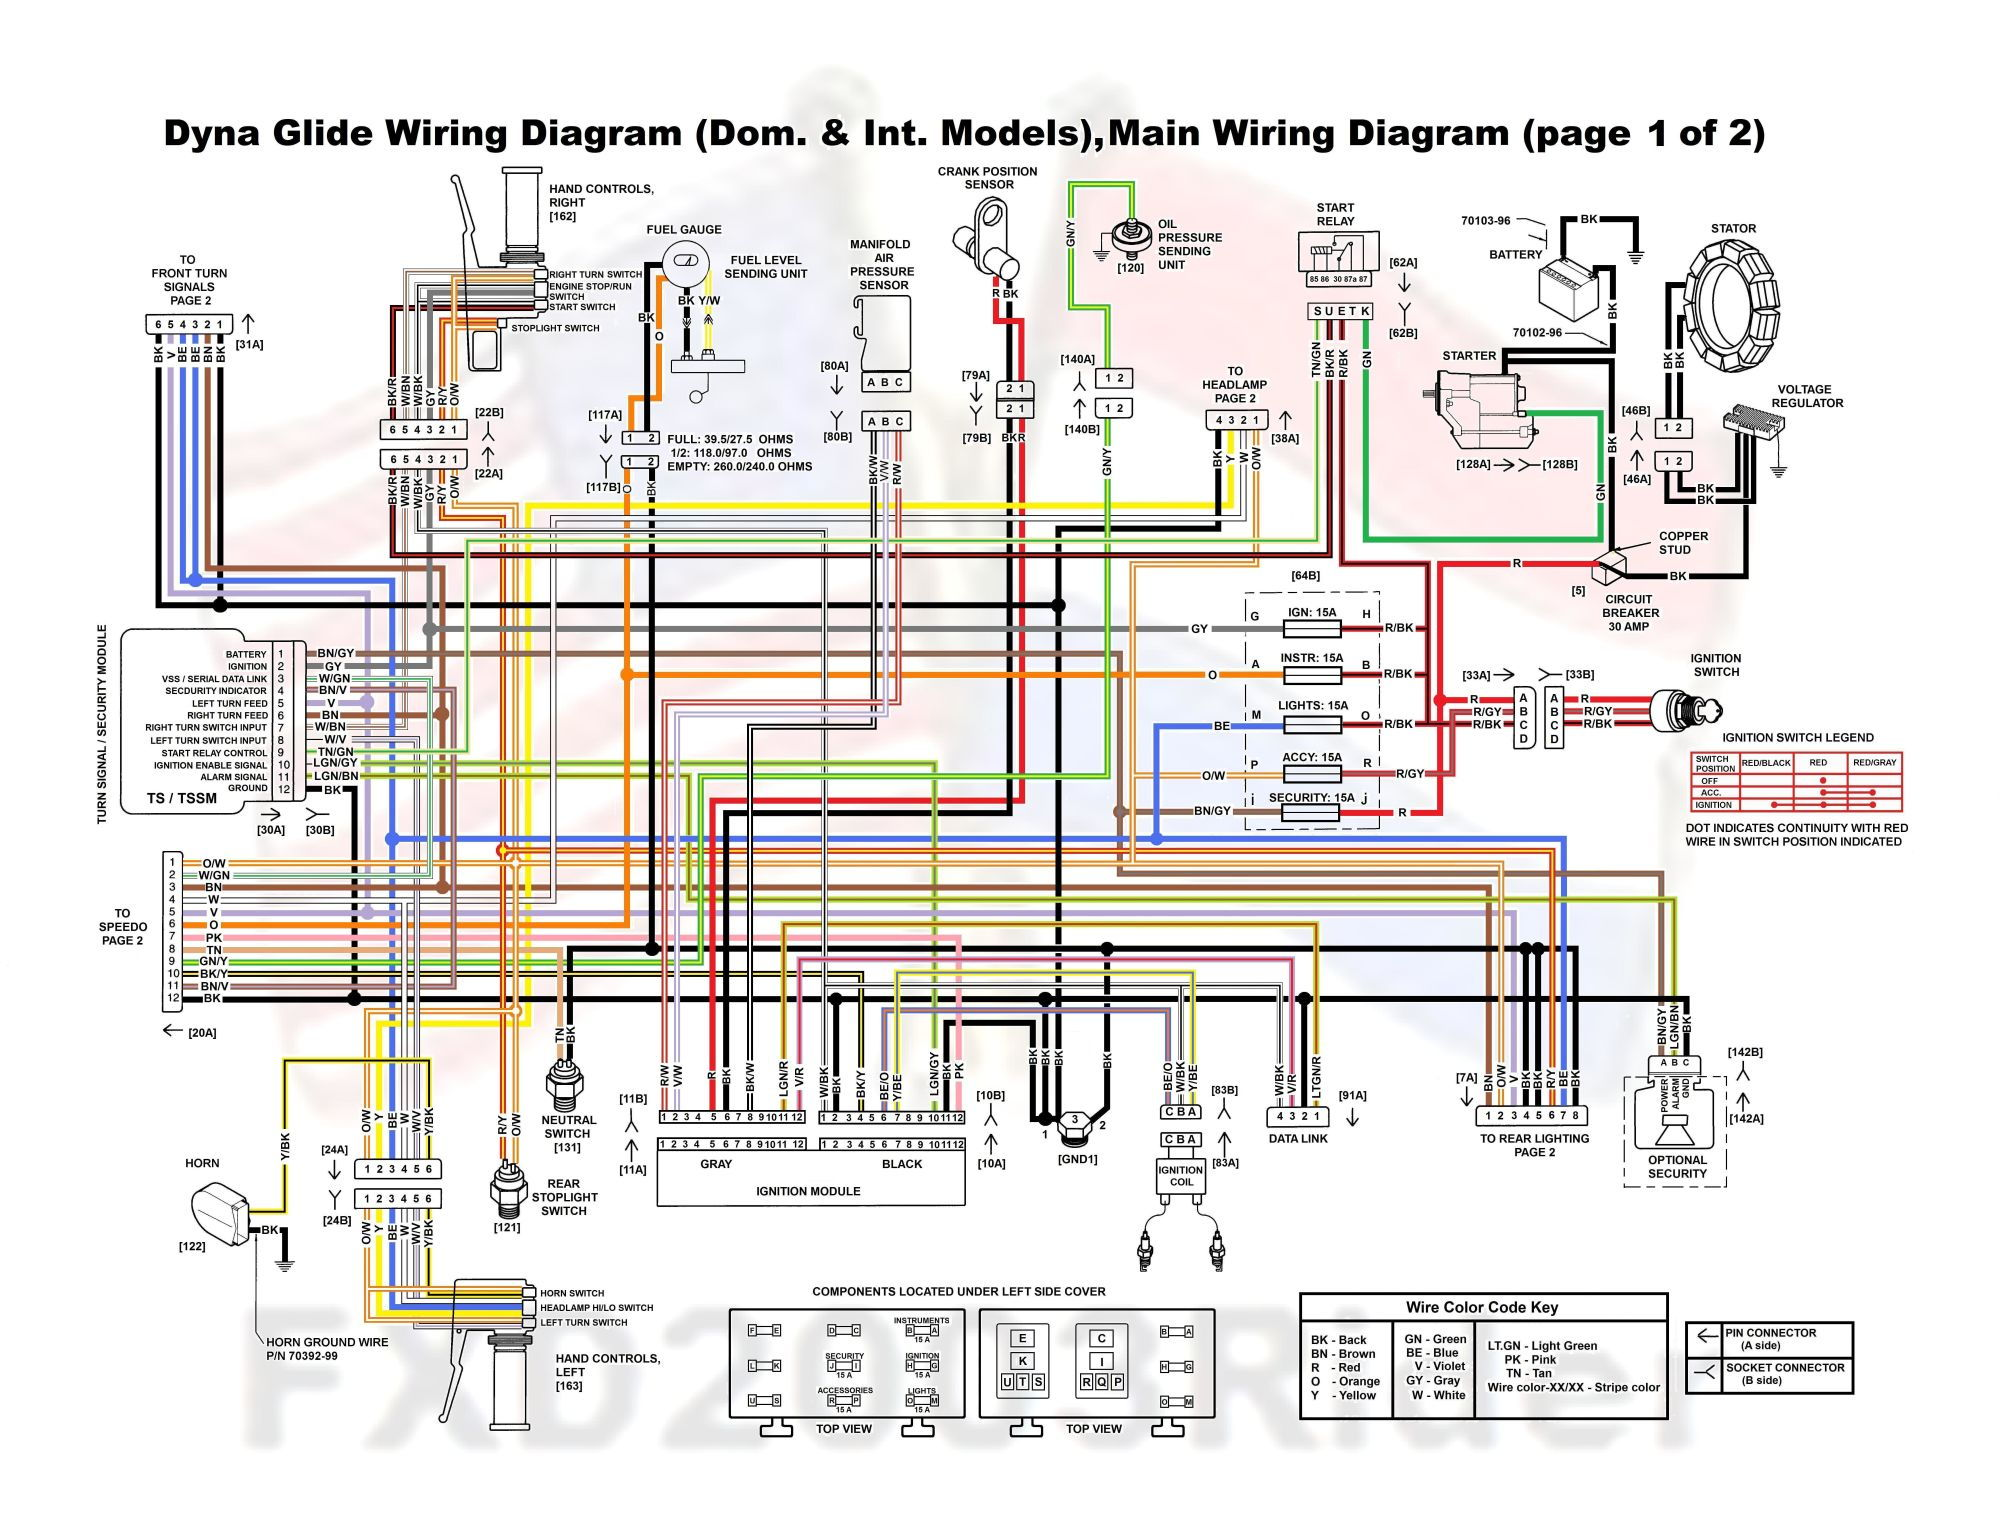 1984 sportster wiring diagram real wiring diagram \u2022 shovelhead wiring diagram need wiring help harley davidson forums 1984 goldwing wiring diagram 1983 sportster coil wiring